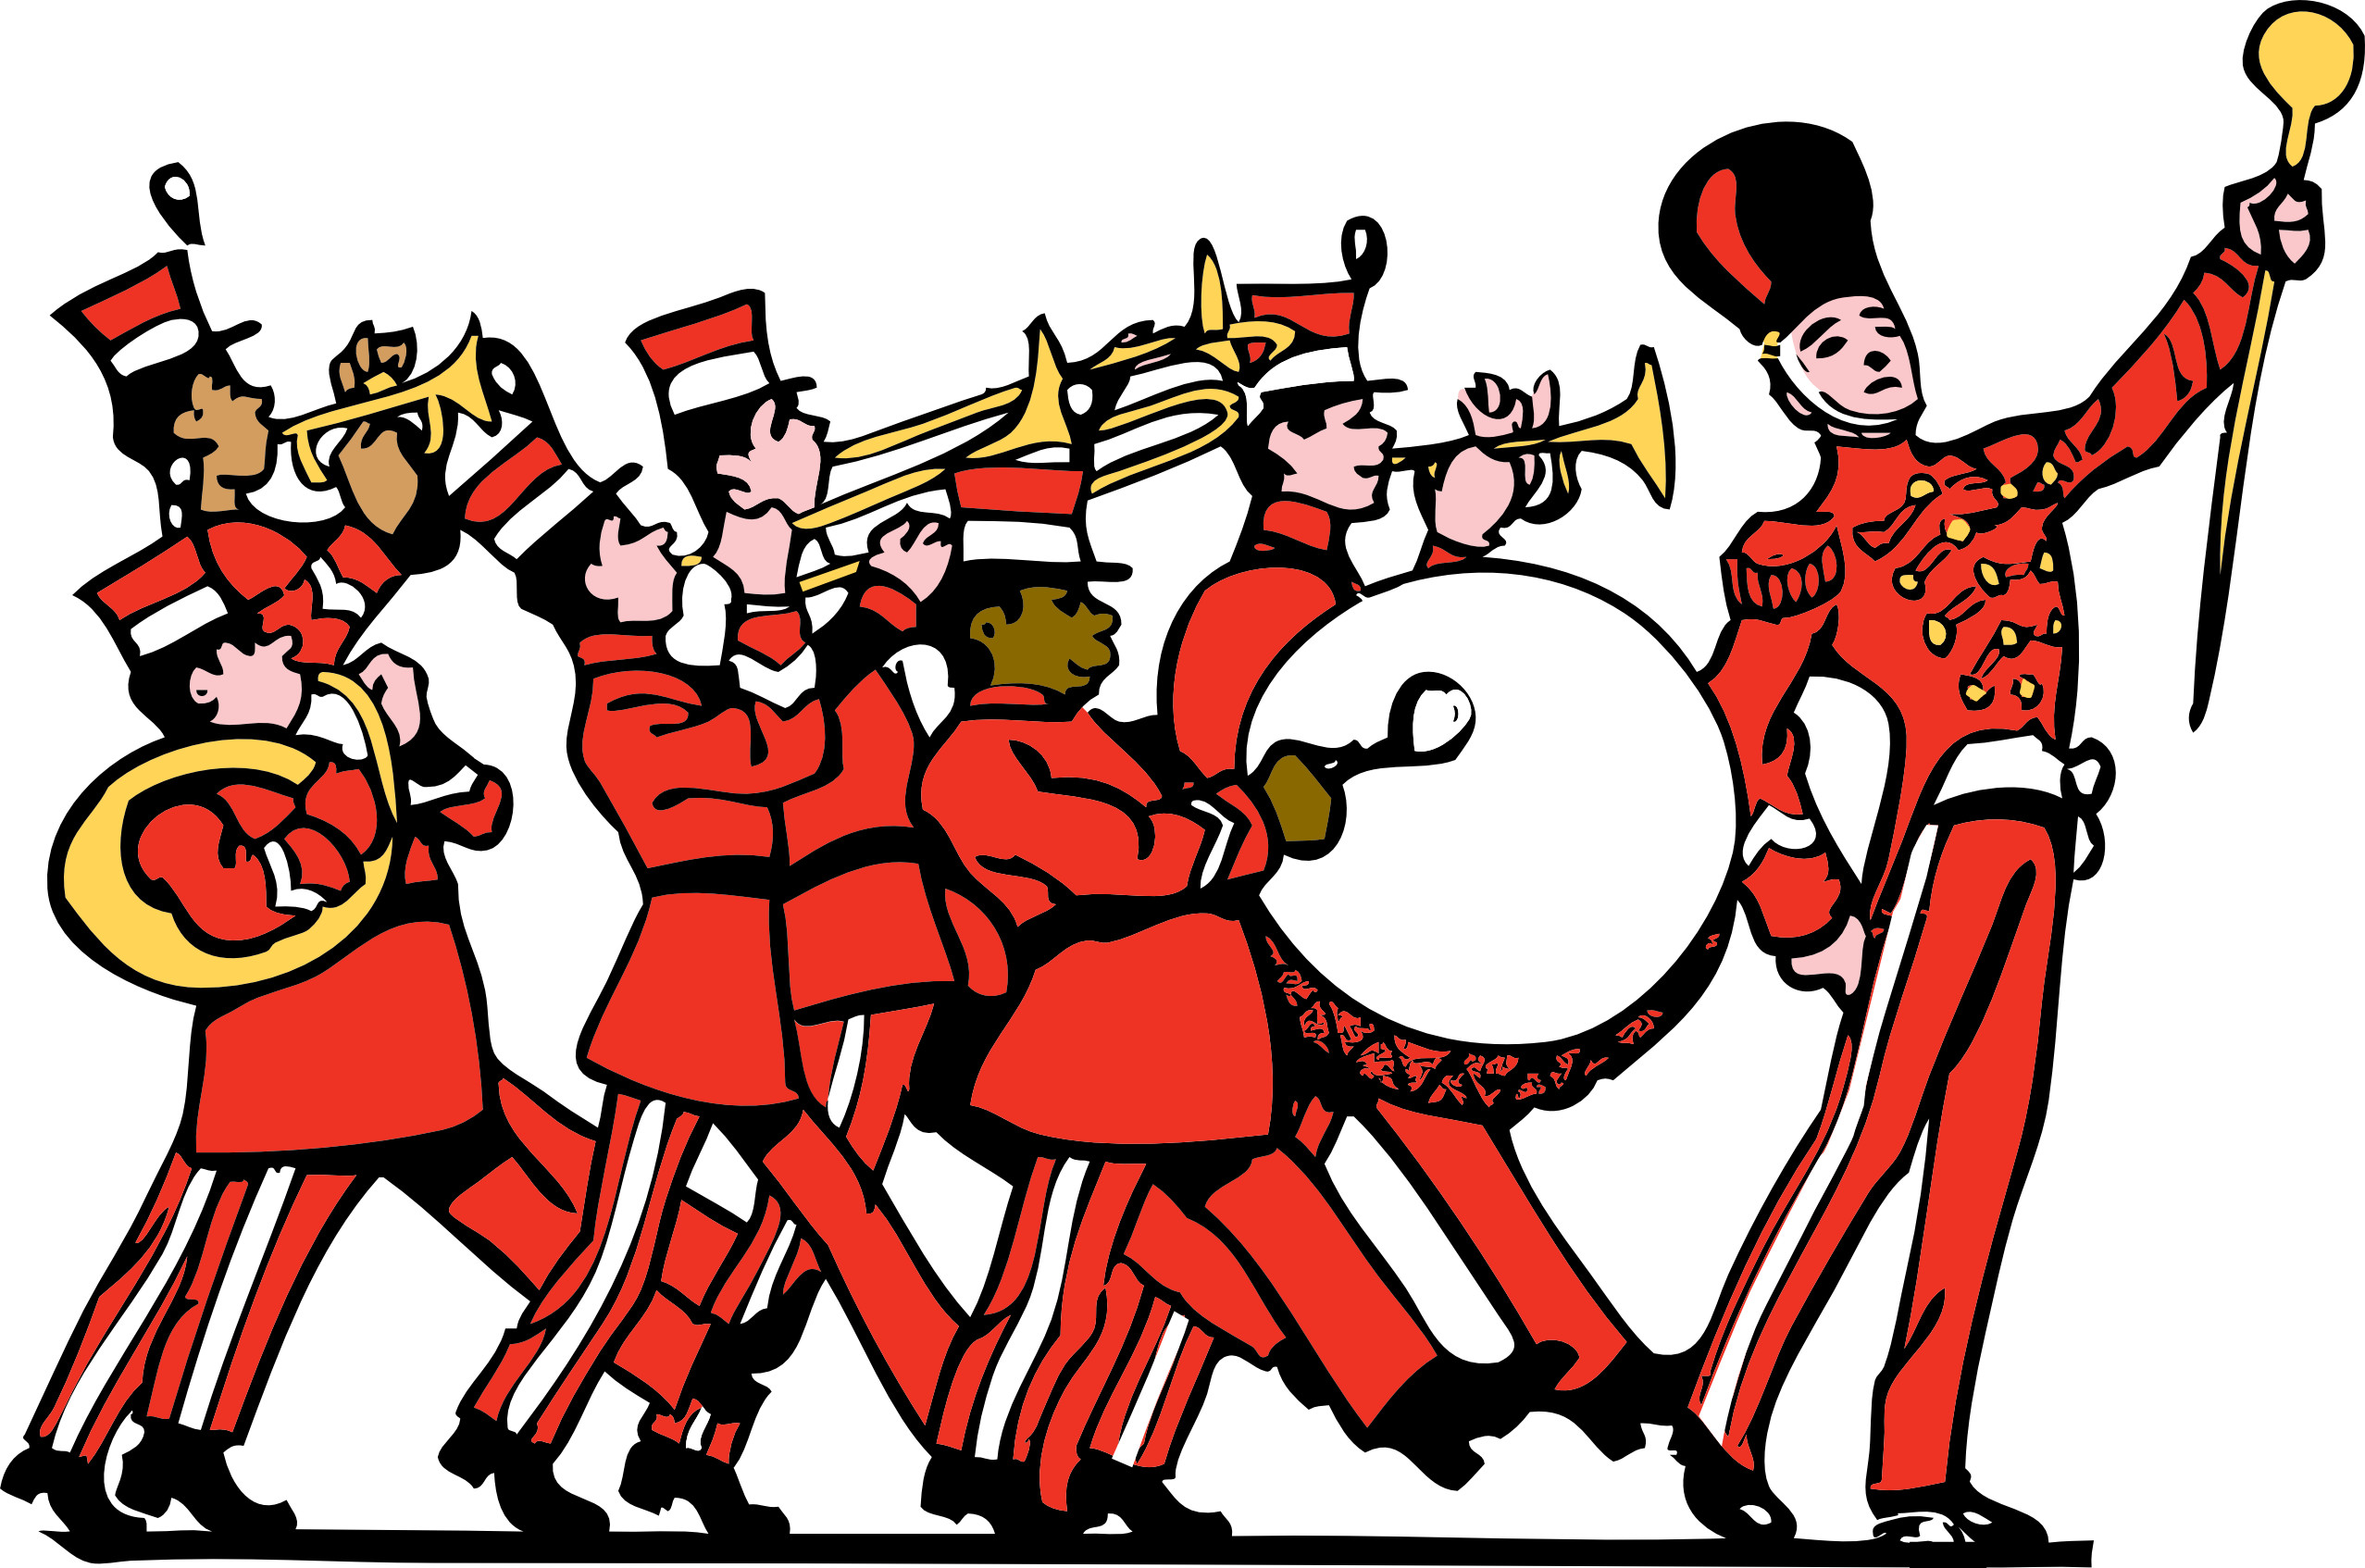 Marching Band Music Wallpaper (85+ images).